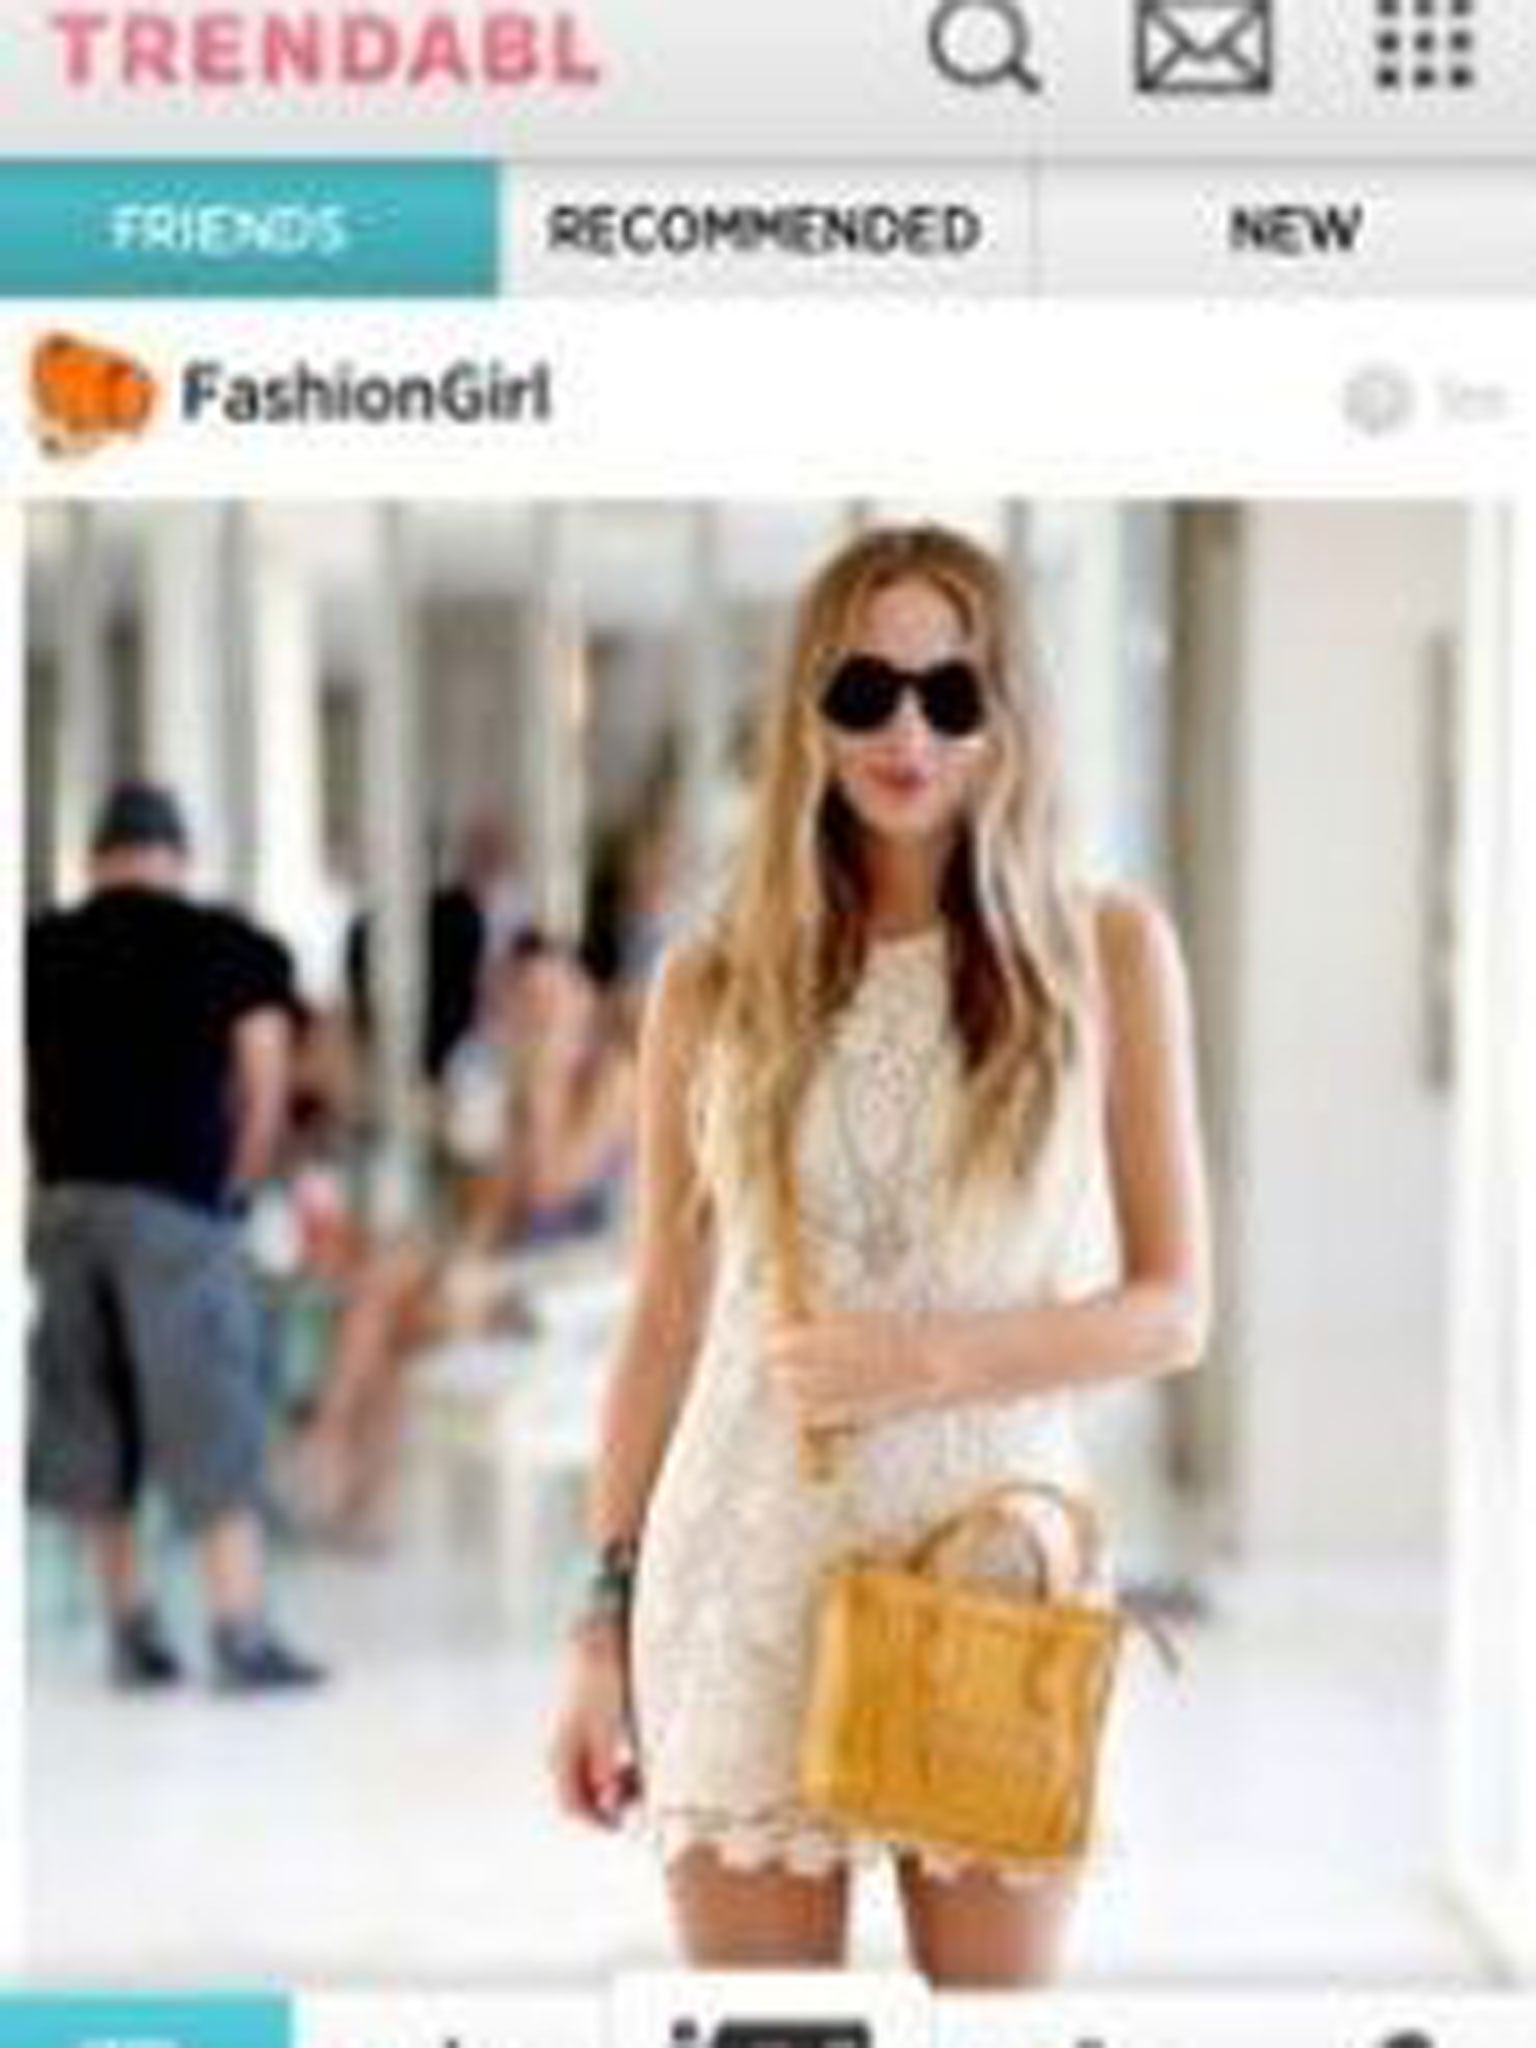 Google's new style-matching service allows you to shop for